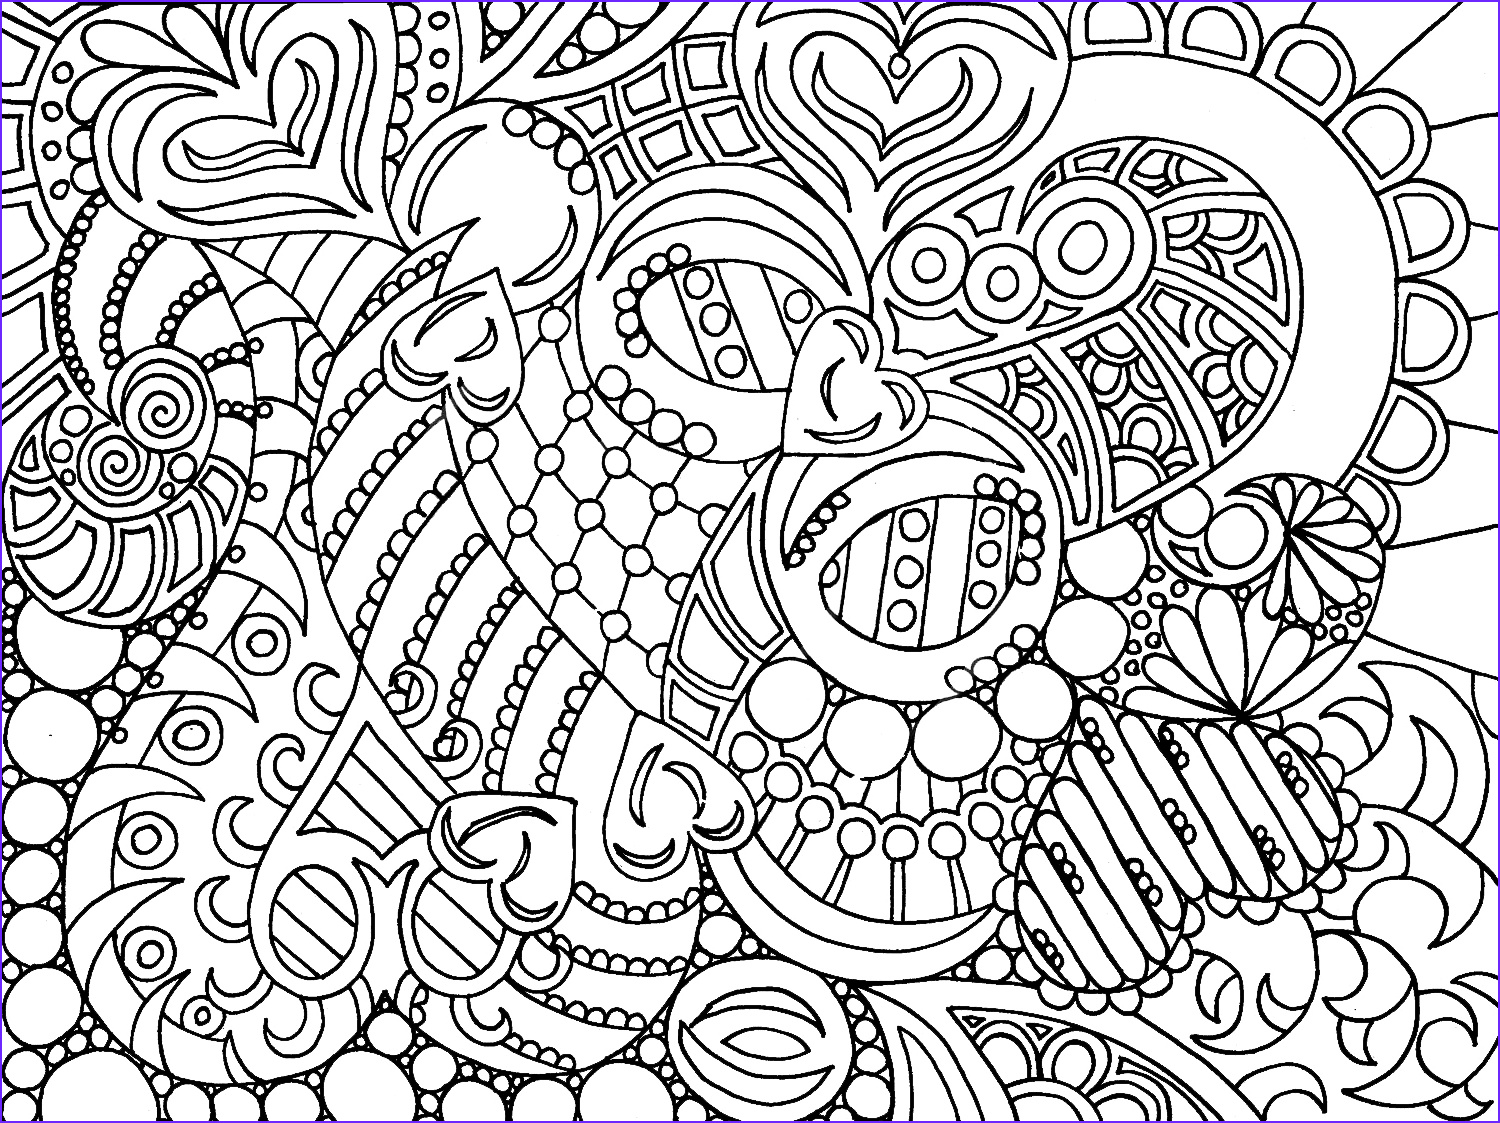 Coloring Images for Adults Inspirational Photography Free Coloring Pages for Adults